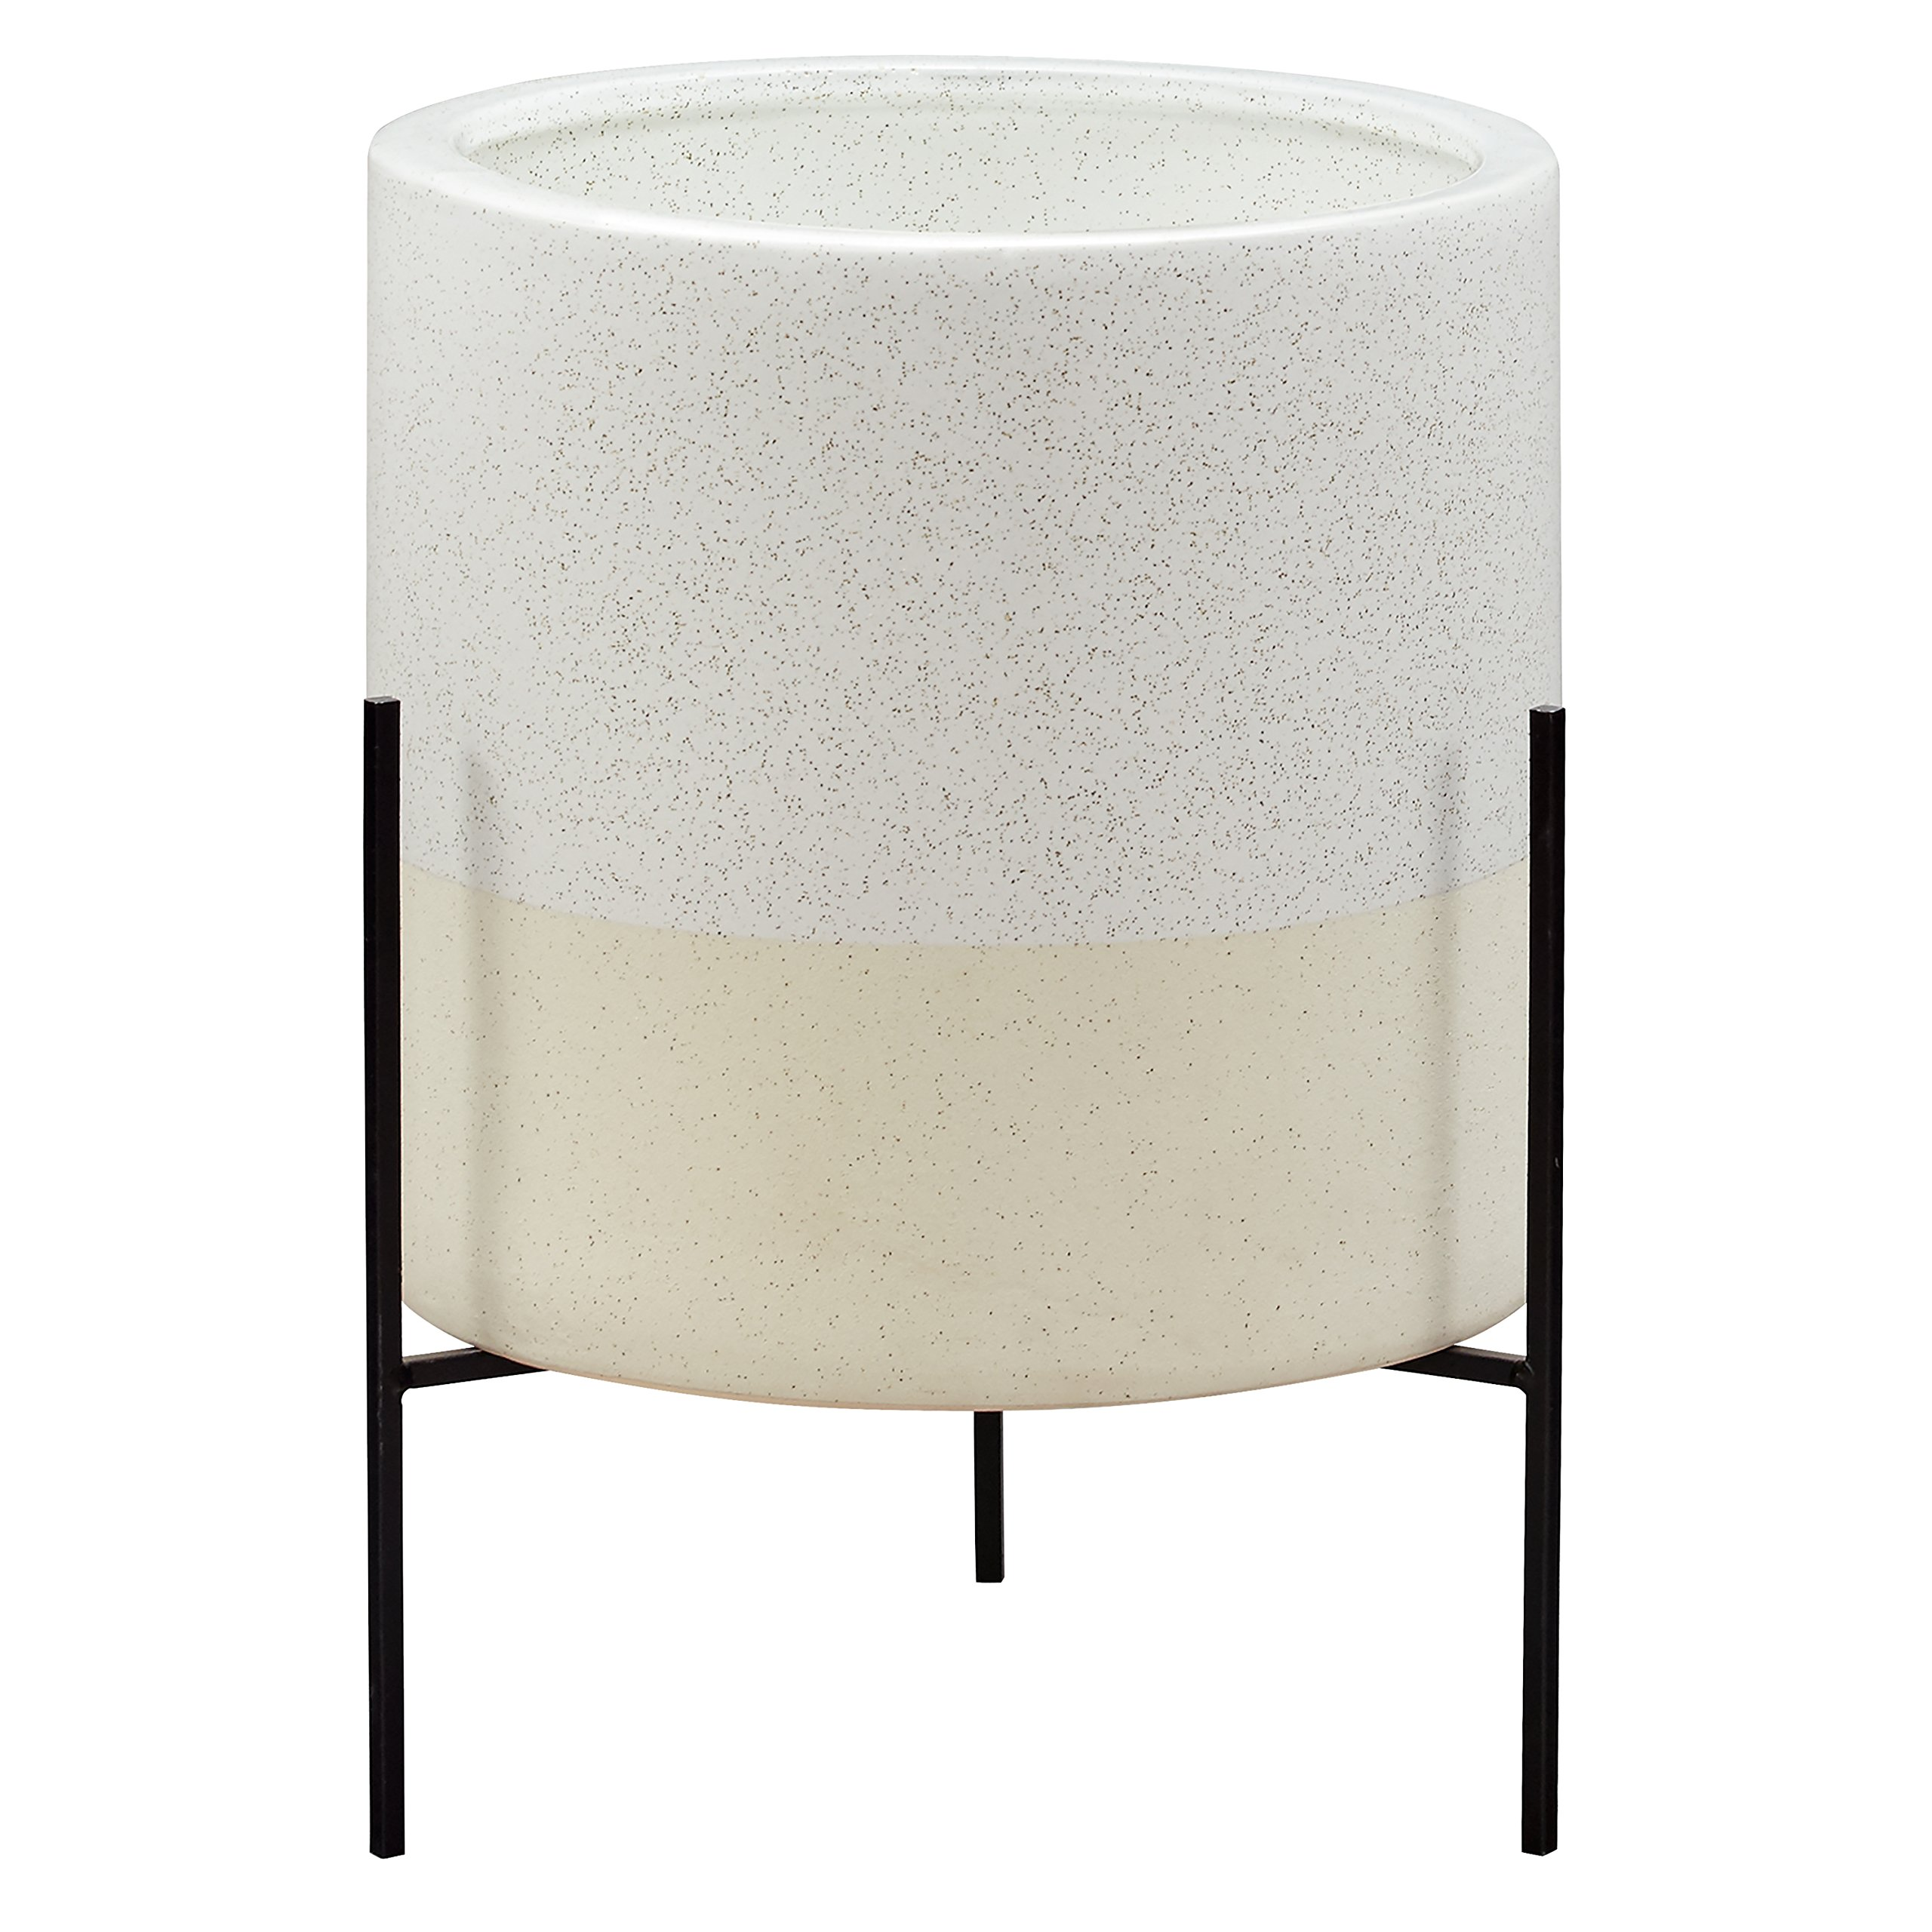 Rivet Mid-Century Ceramic Planter with Stand, 17''H, White by Rivet